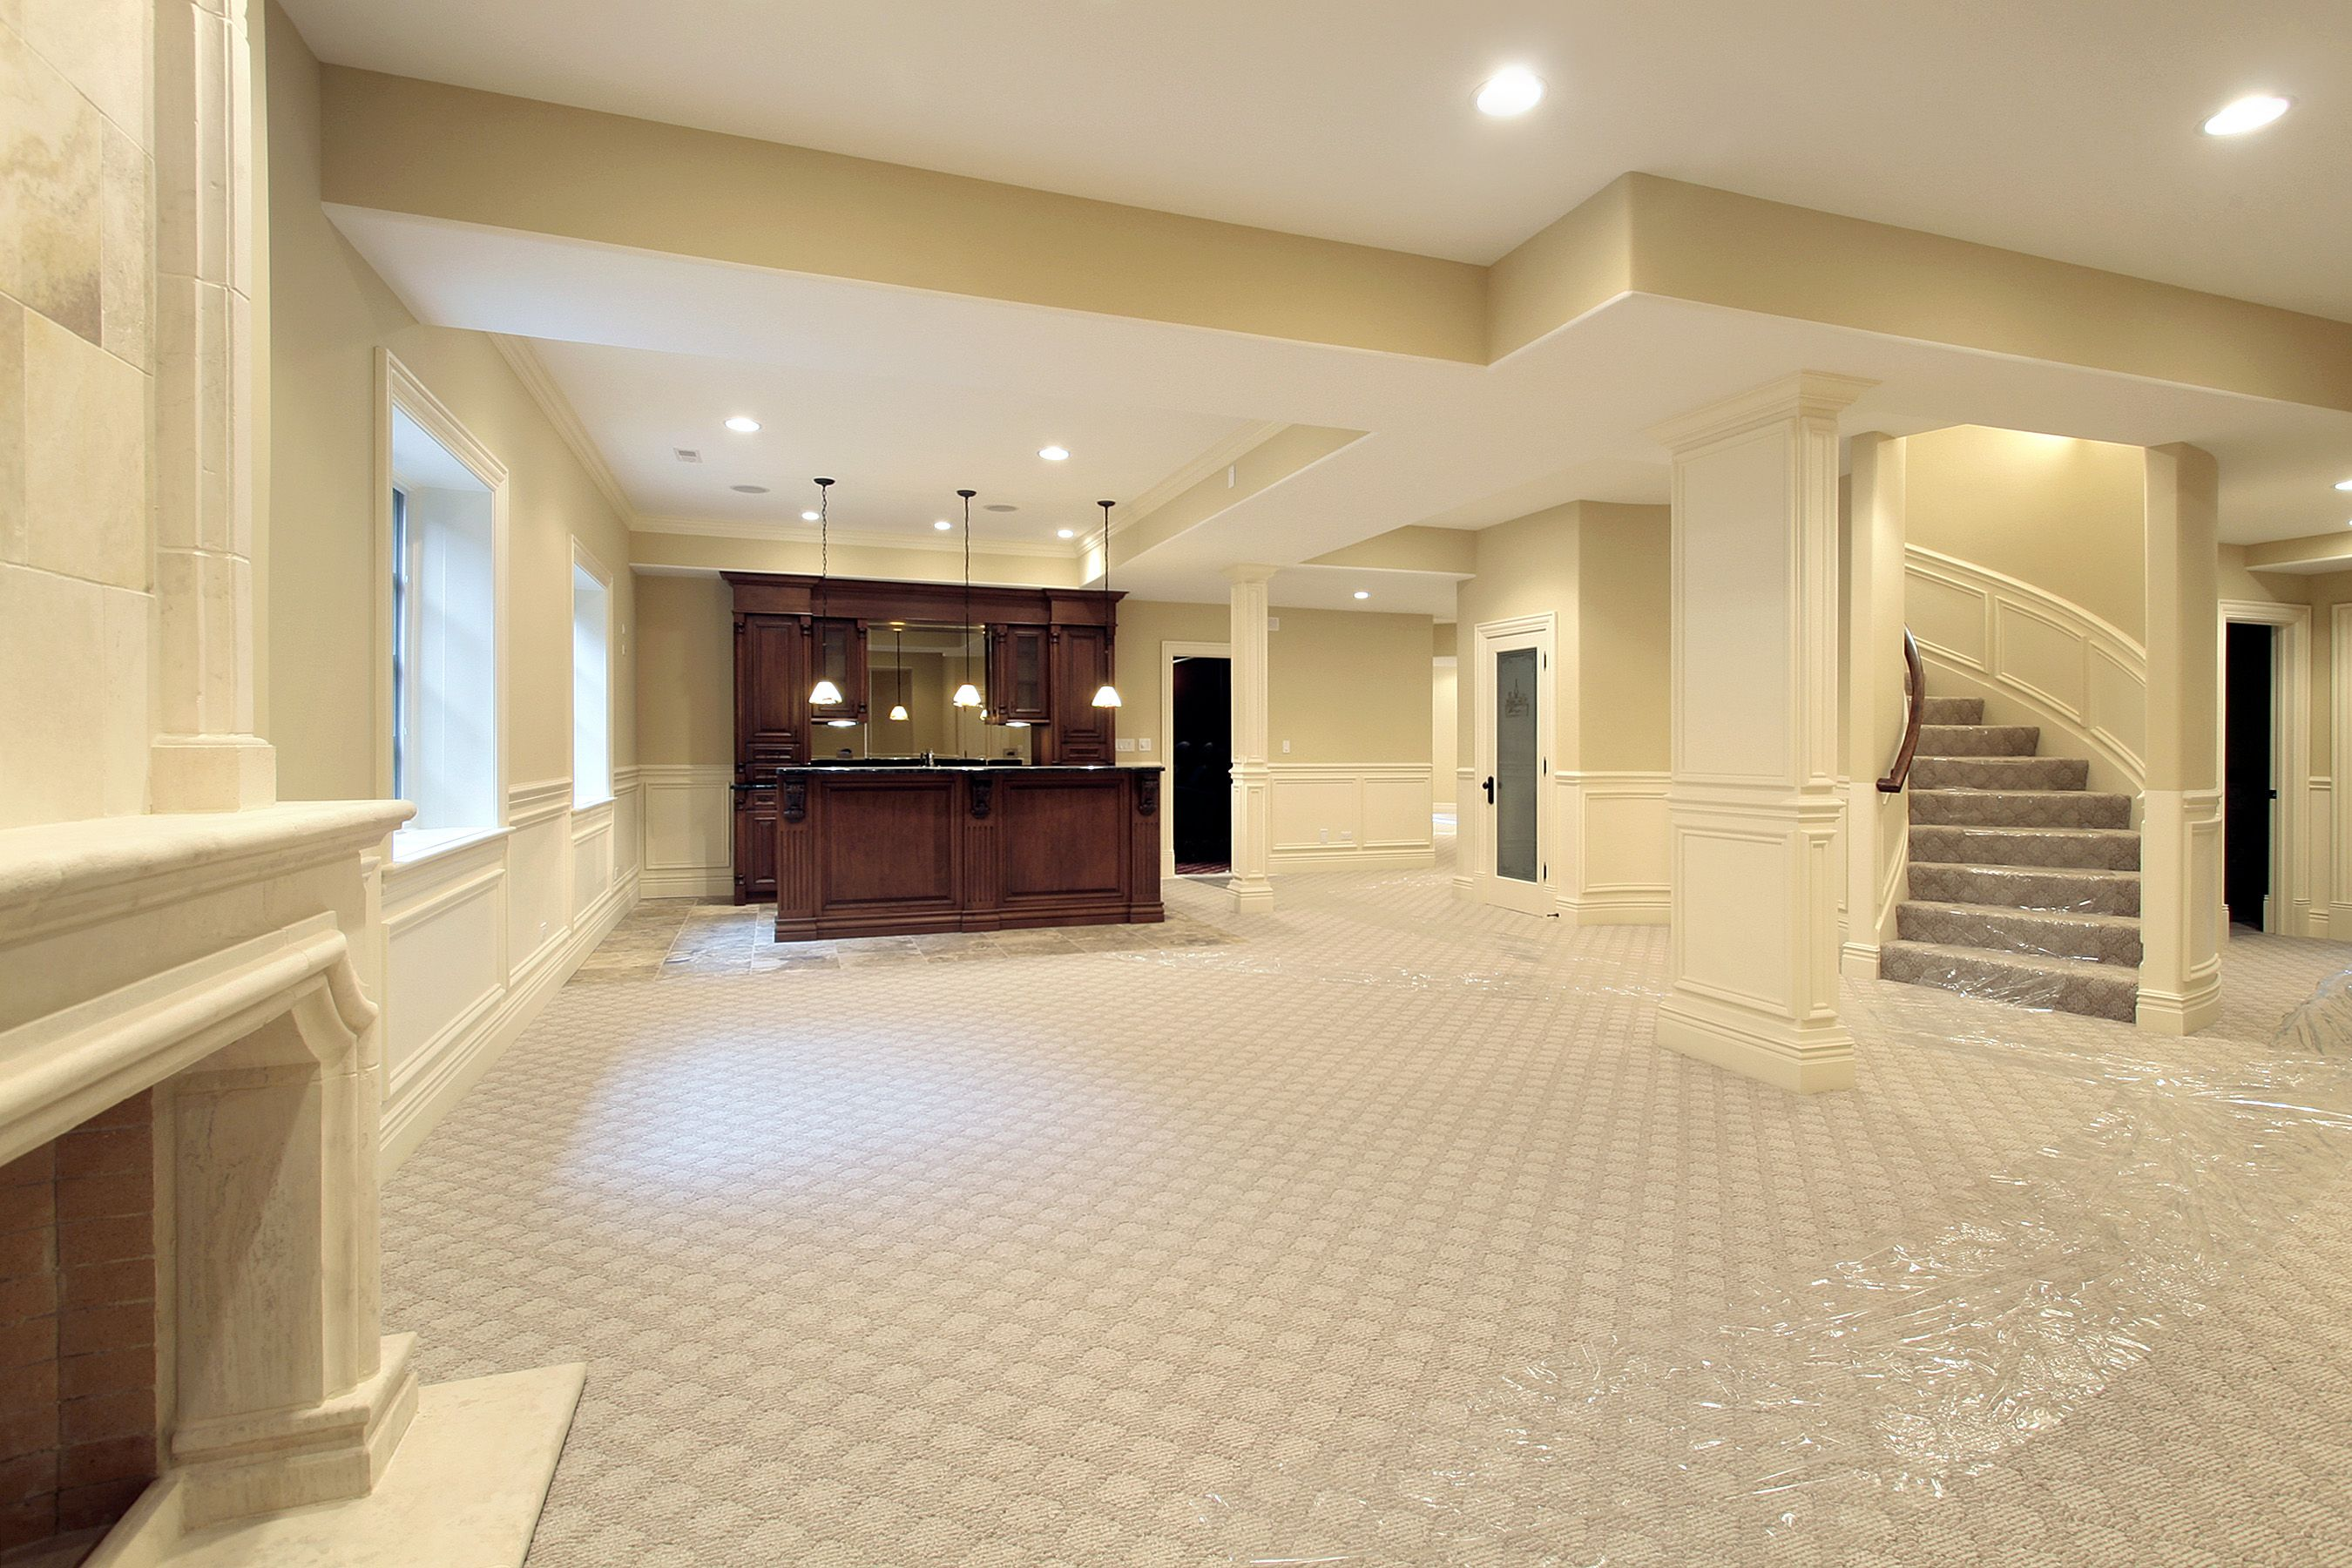 Home Improvement Ideas: Benefits of Finishing Your Basement in Windsor, CT